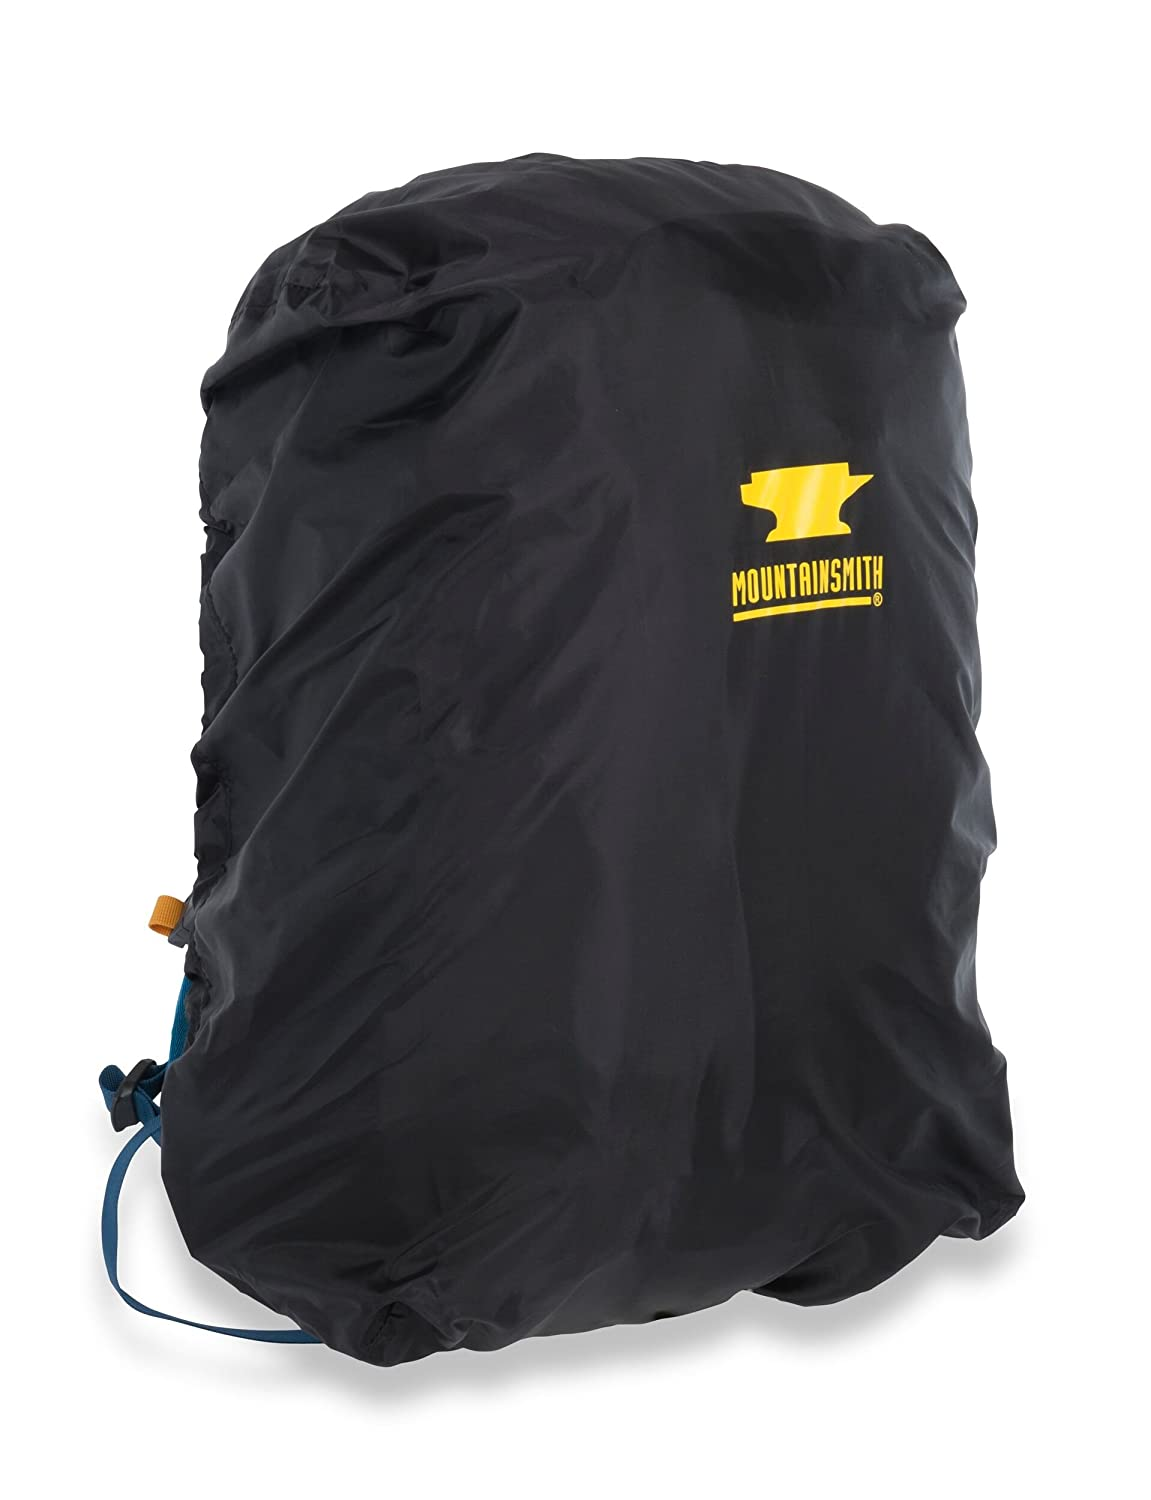 Mountainsmith 07-90010-01 Rain Cover (Black)